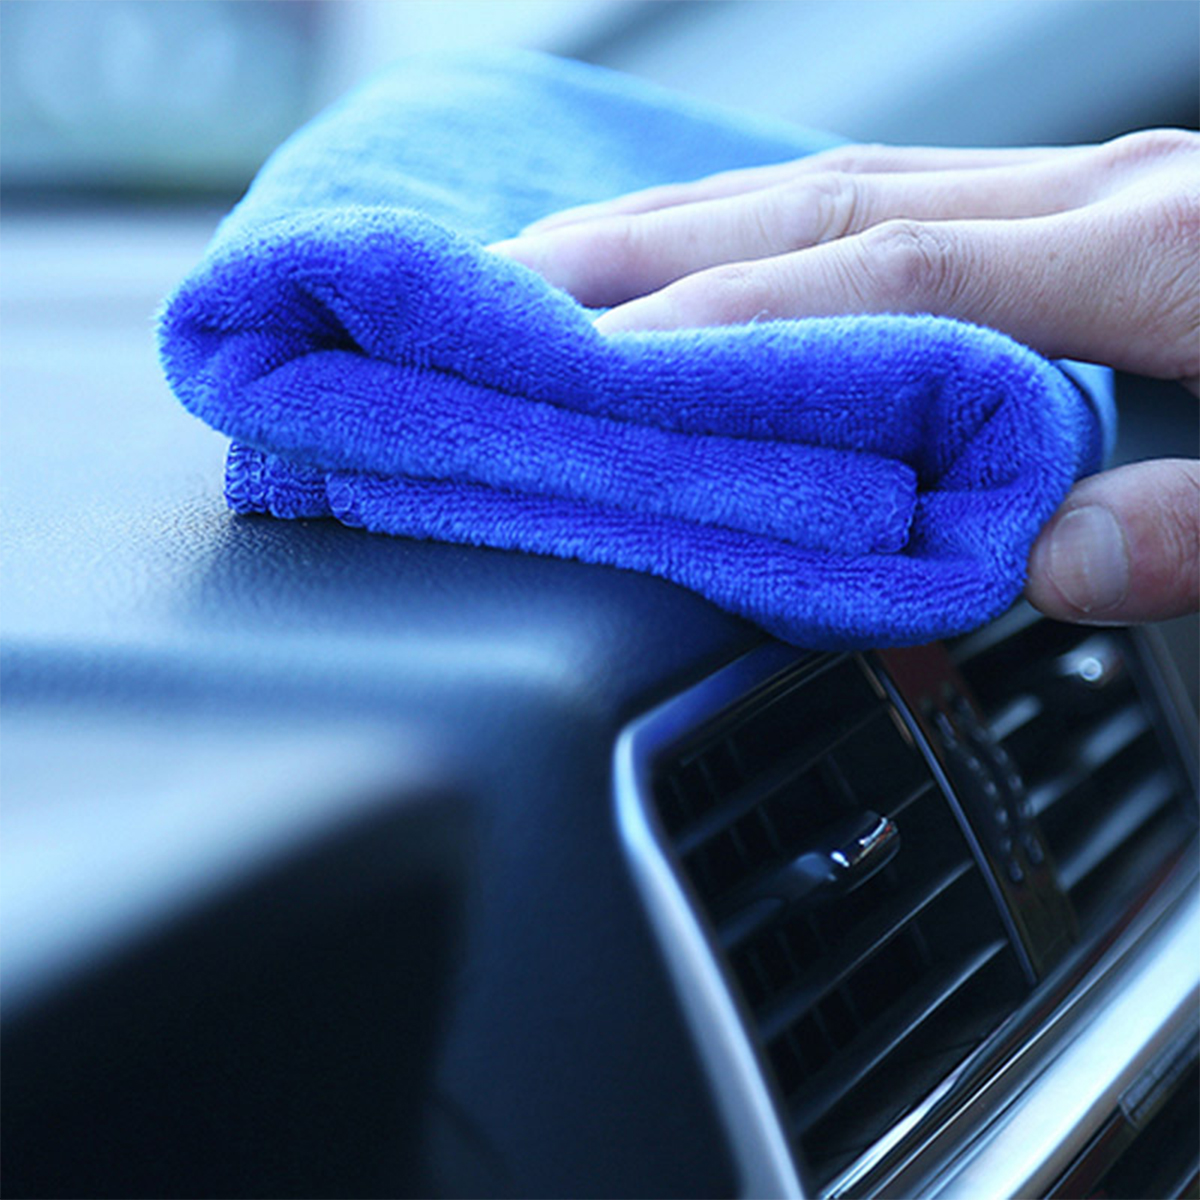 10PCS Microfiber Cleaning Cloths Washing Towel Blue for Car Polishing Wax Detailing Drying